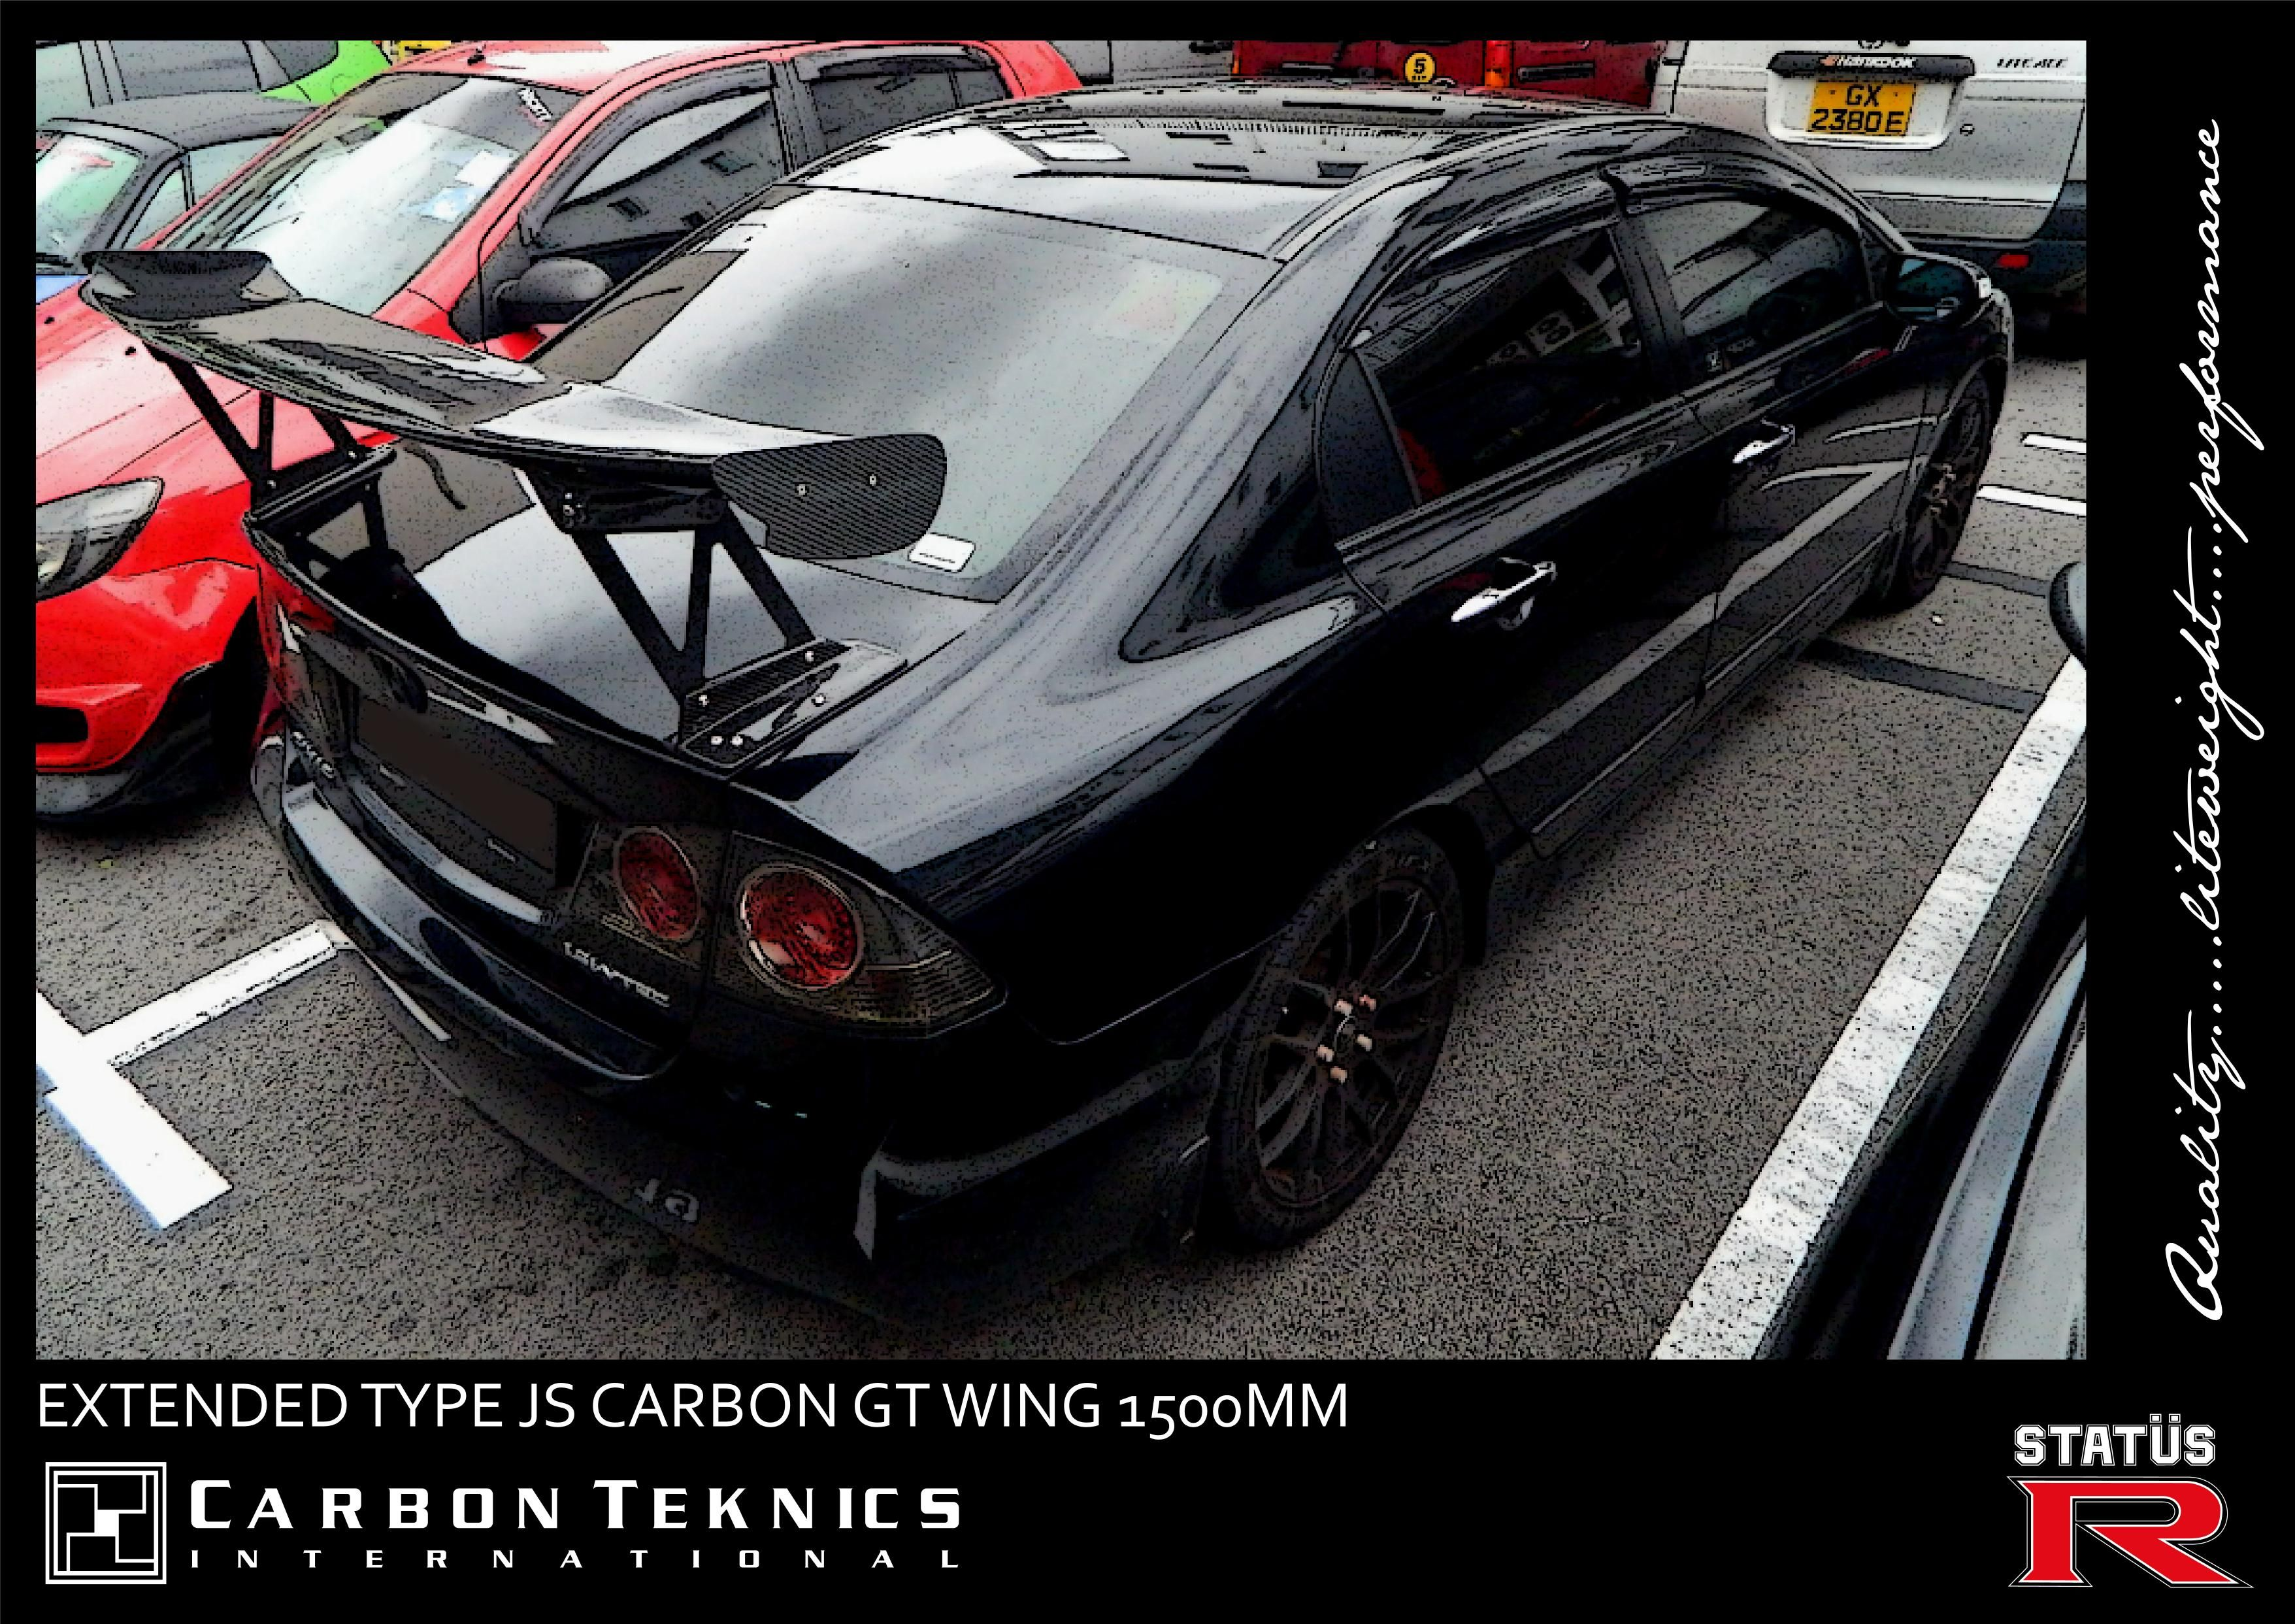 Another view of the black civic fd installed with our type js 1500mm gt wing